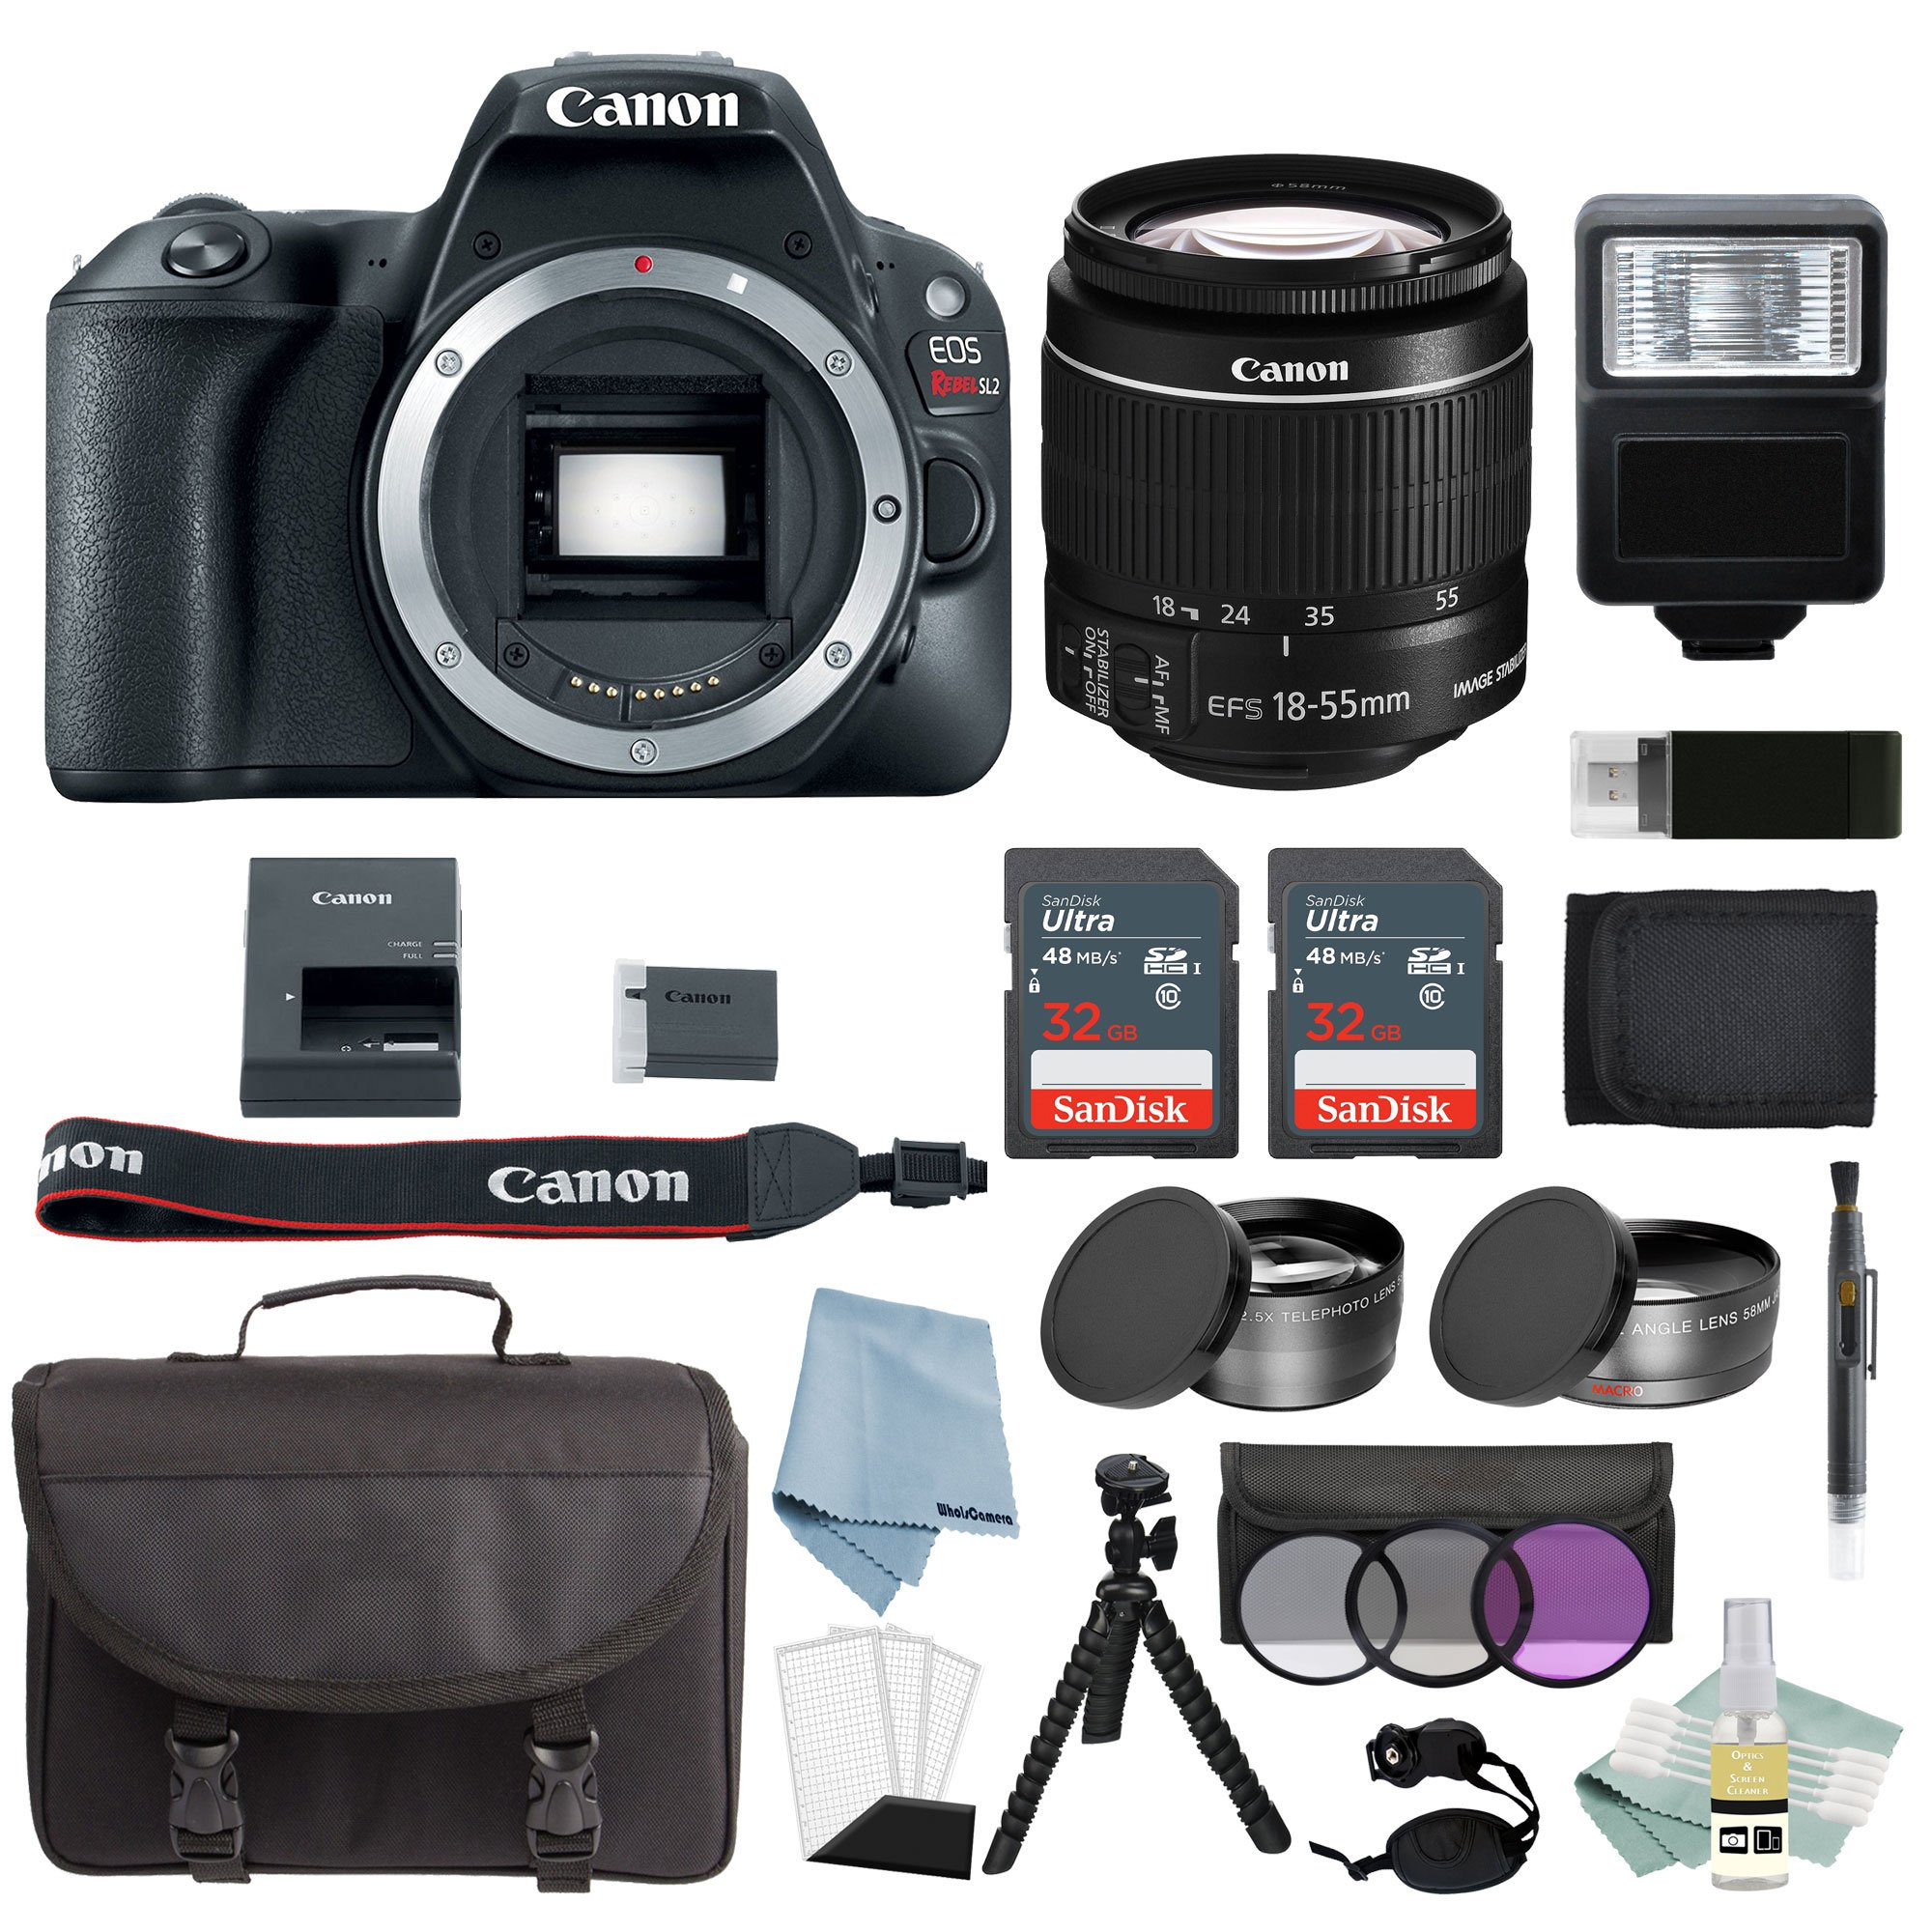 Canon EOS Rebel SL2 Bundle With EF-S 18-55mm f/4-5.6 IS STM Lens + Canon SL2 Camera Advanced Accessory Kit - Canon SL2 Bundle Includes EVERYTHING You Need To Get Started